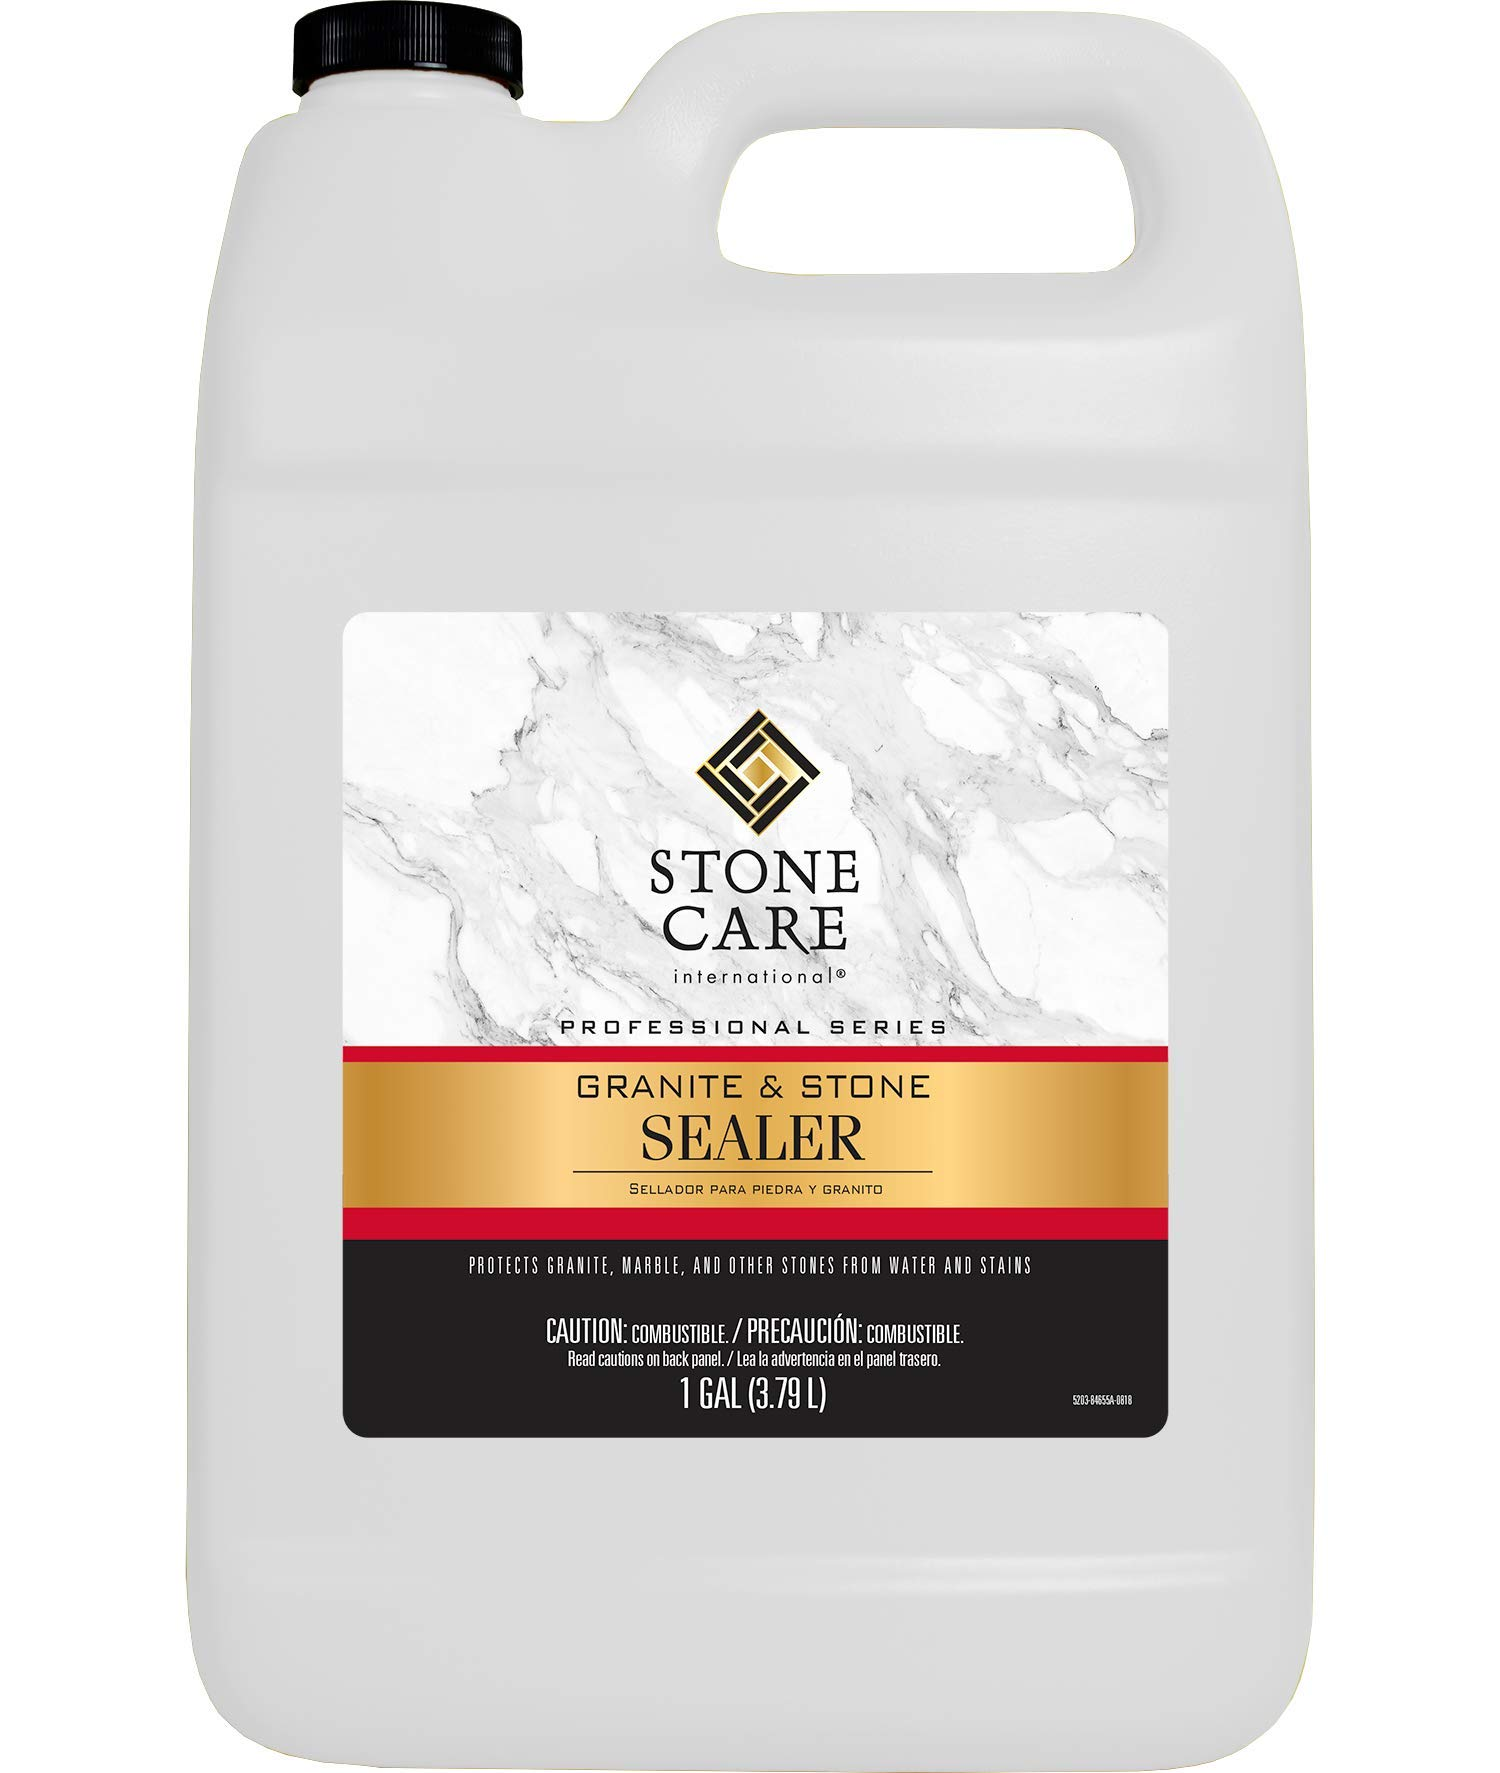 Stone Care International Stone Sealer - 128 Ounce (1 Gallon) - Professional Granite Sealer Protect Your Stone Marble Granite Travertine Limestone Countertop Fireplace Patio - Streak-less by Stone Care International